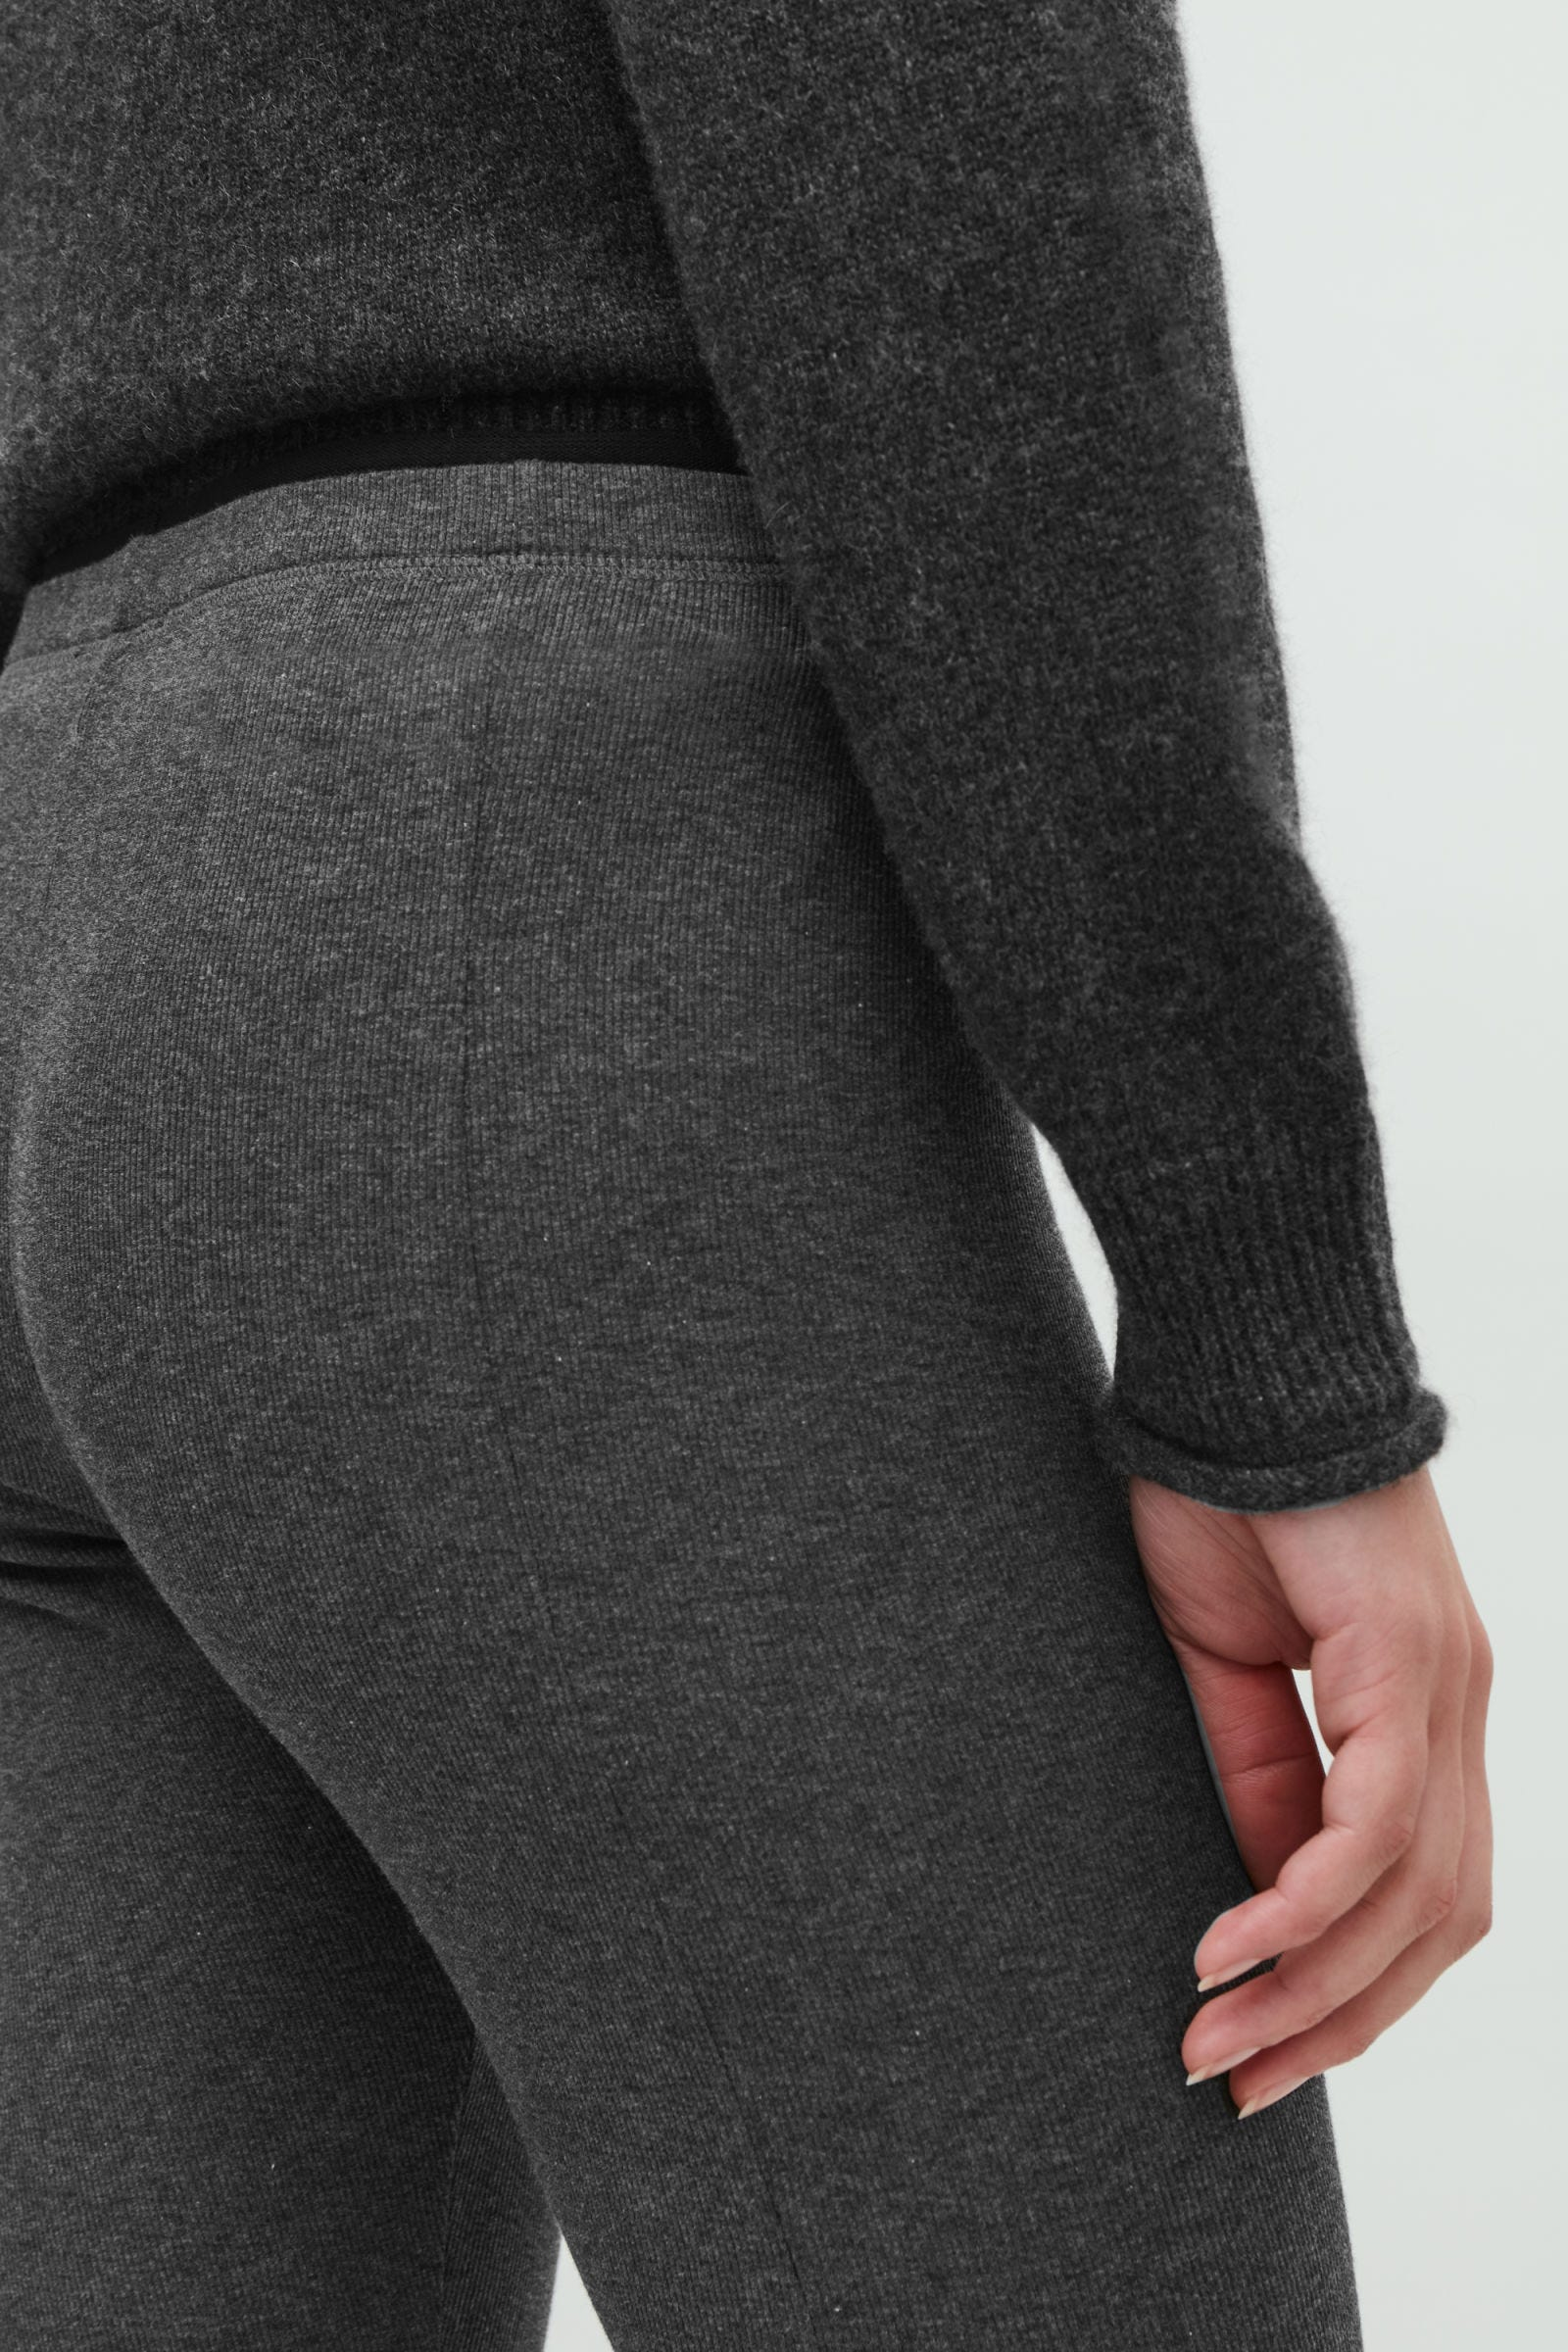 9a39c759889e38 Best Leggings To Wear For Every Occasion